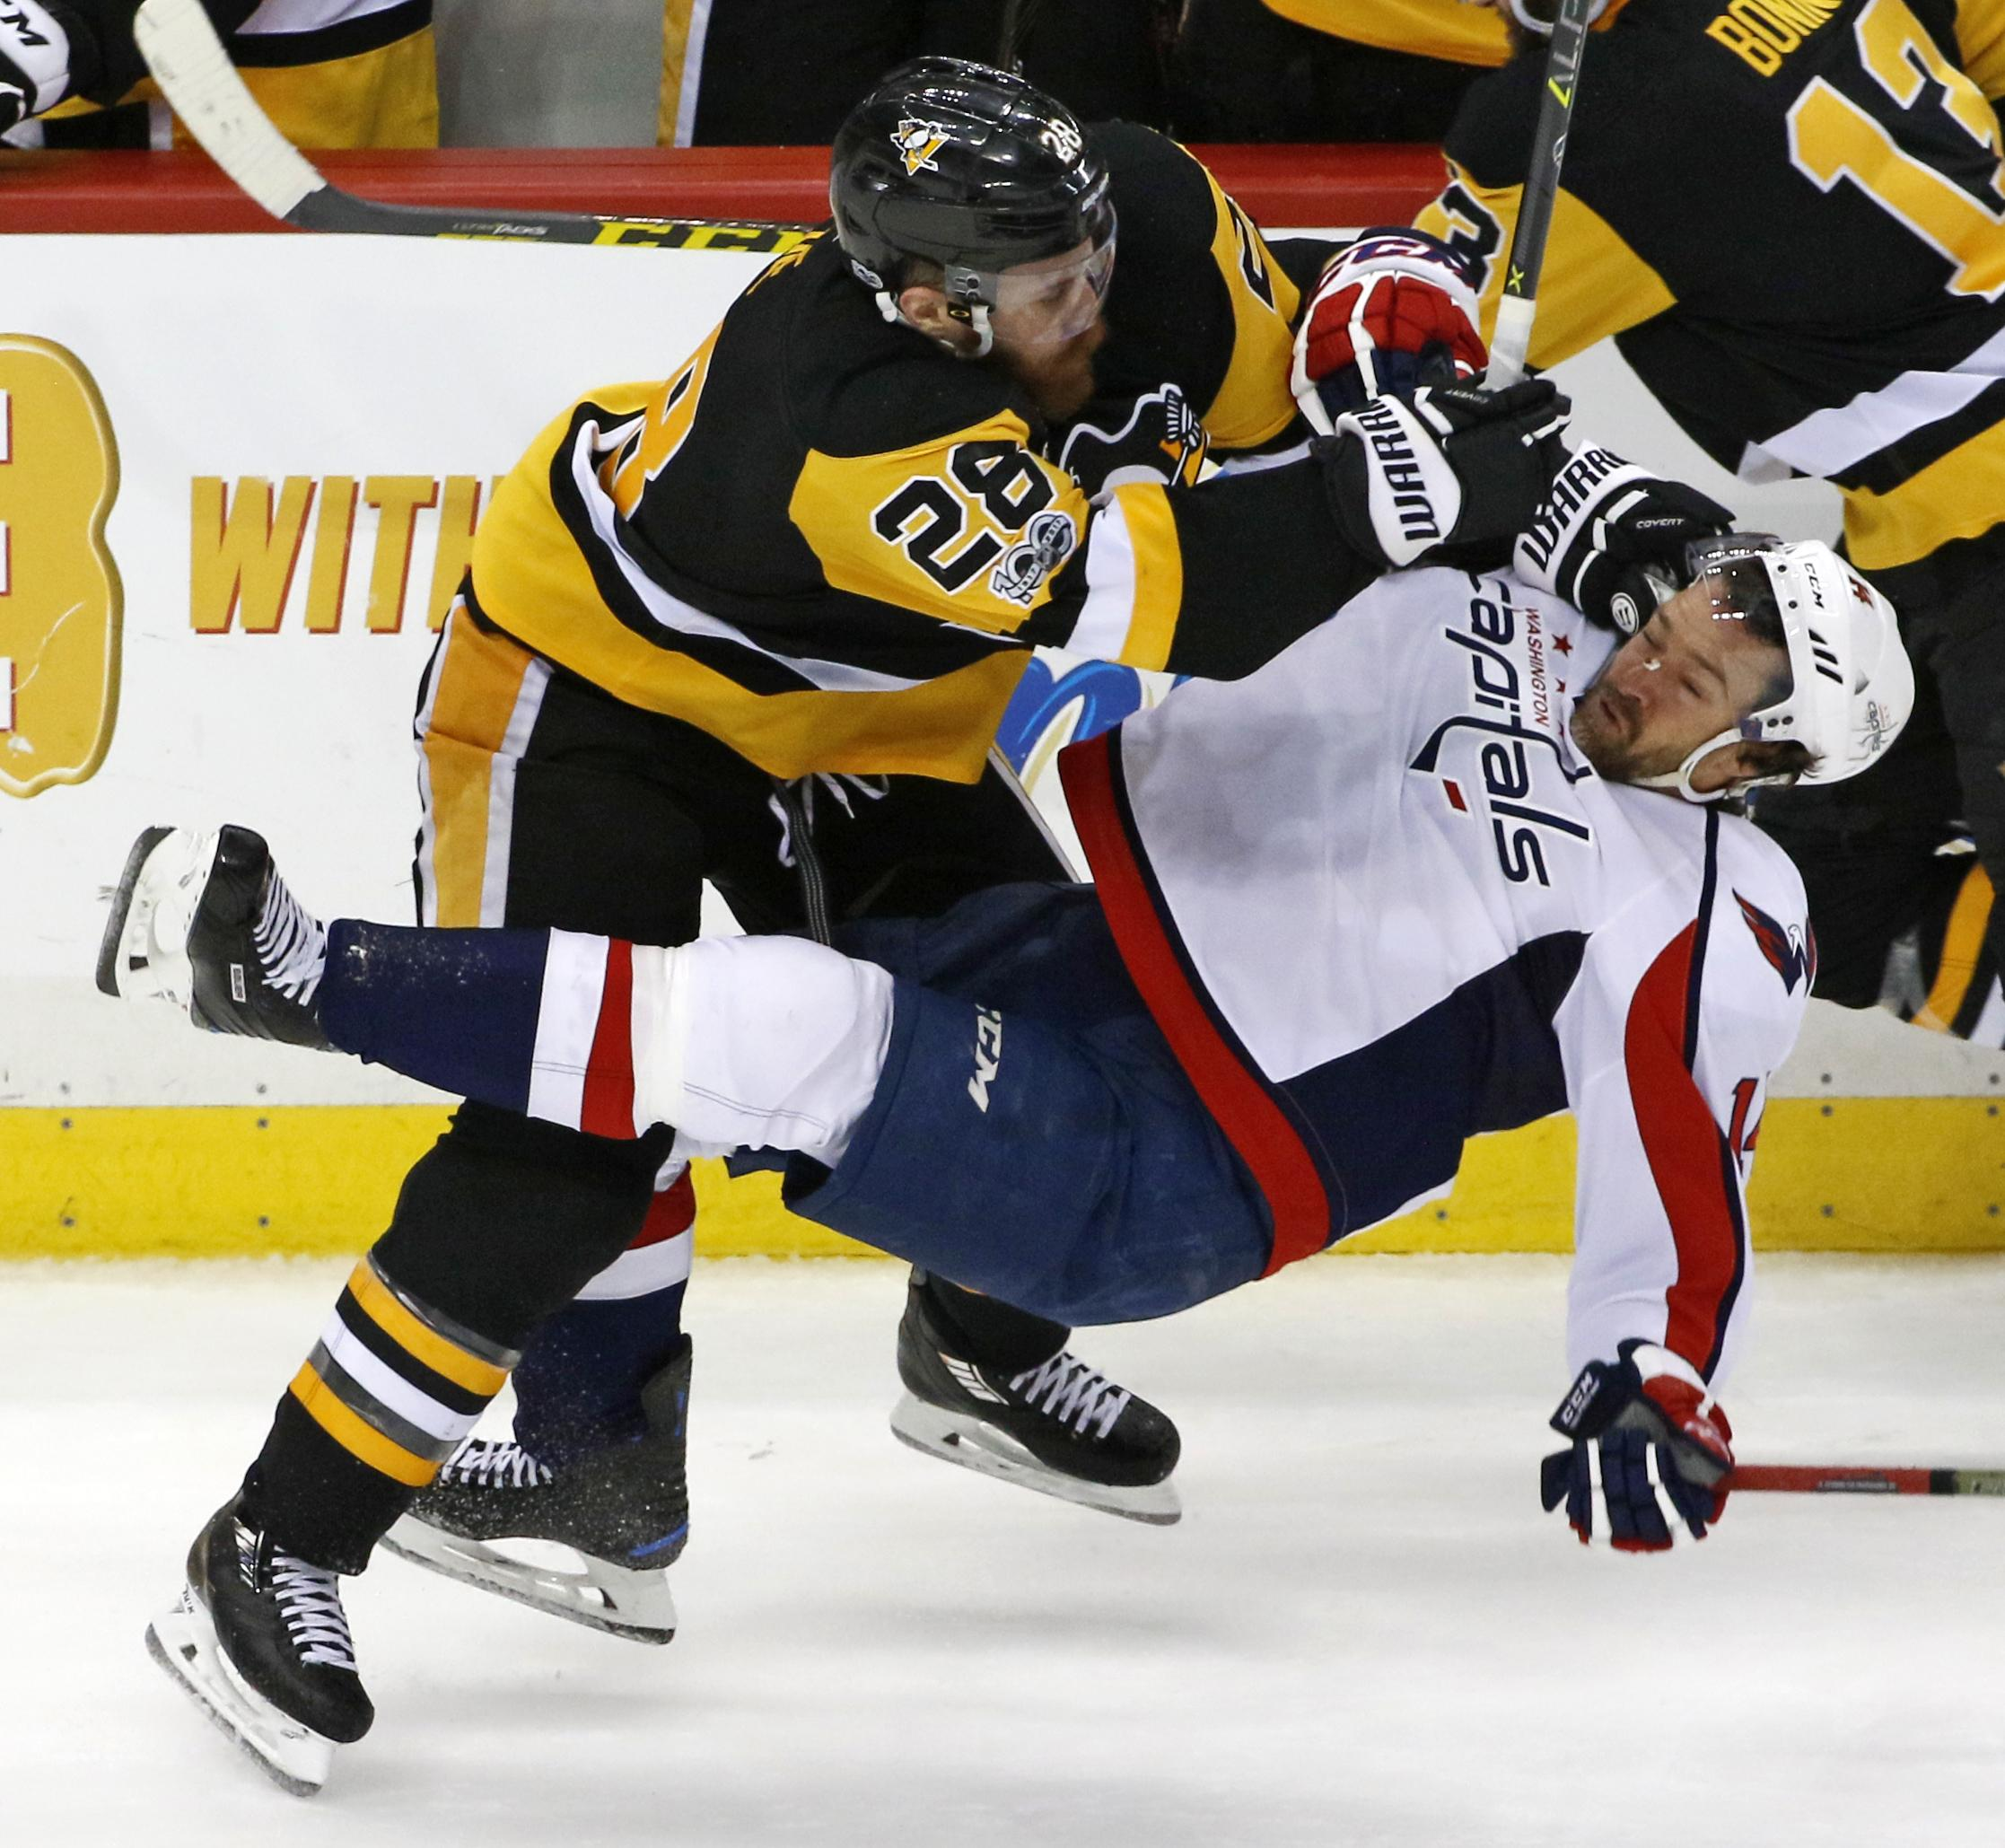 Penguins Relying On Grit Defense To Take Control Vs Caps